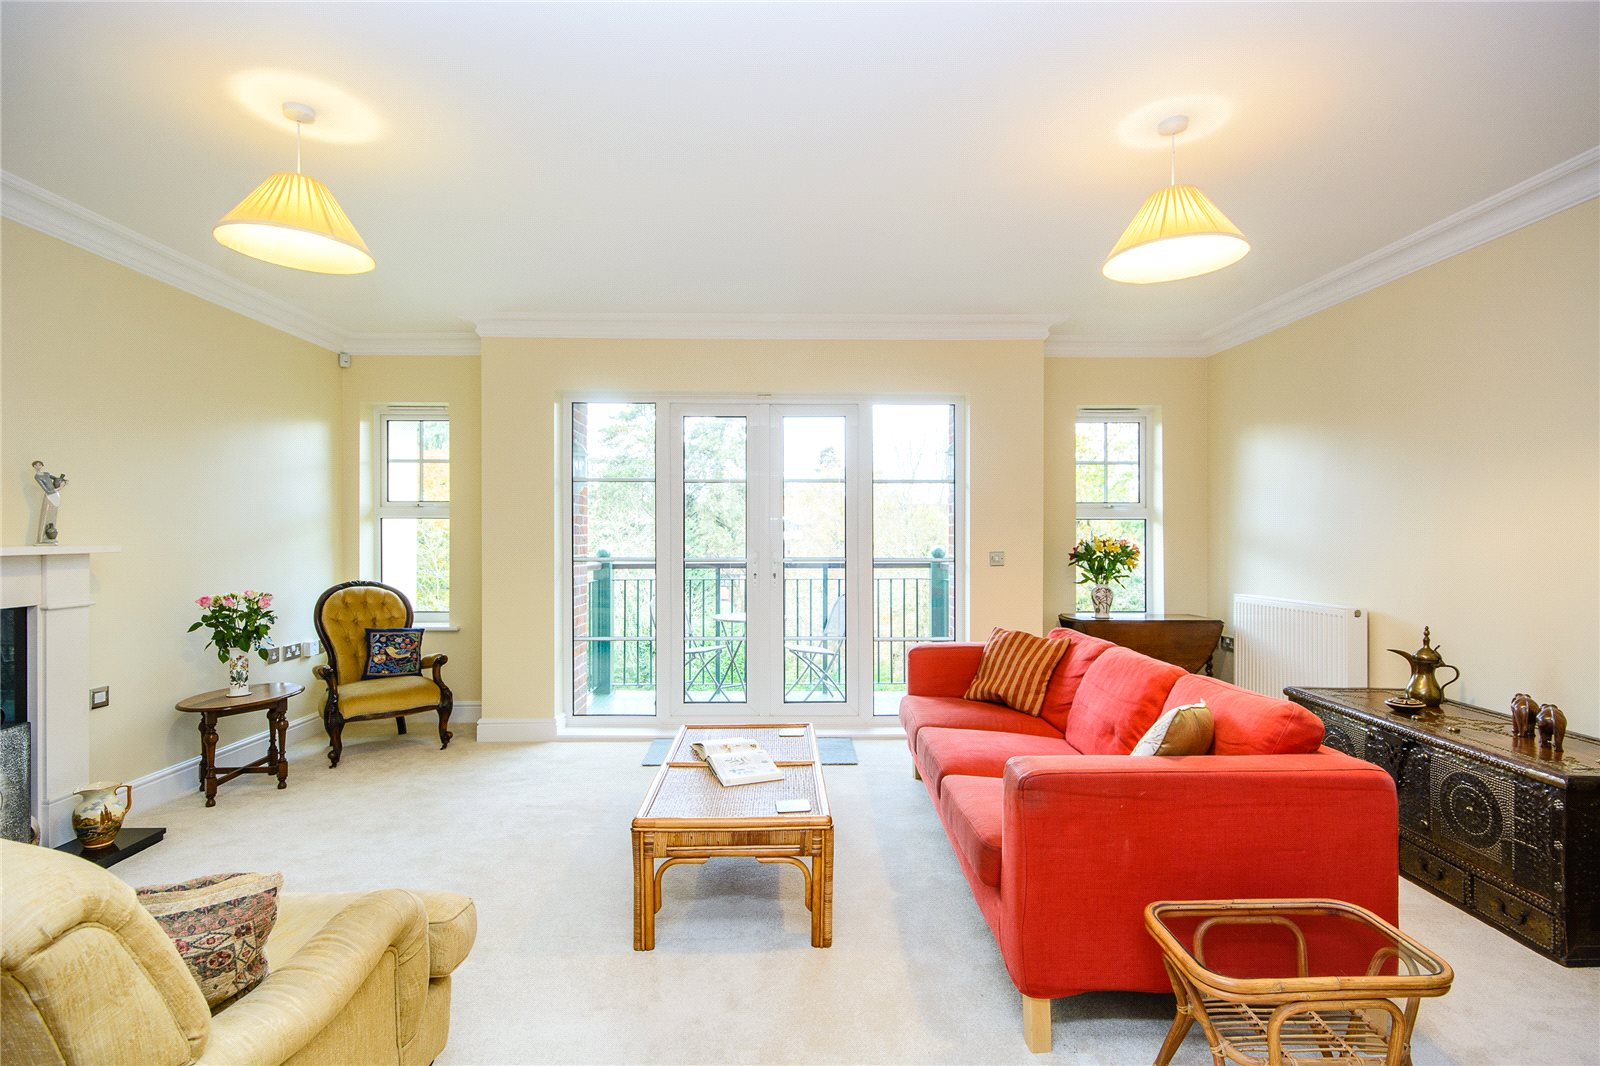 Additional photo for property listing at Crompton Hall, South Park, Gerrards Cross, Buckinghamshire, SL9 Gerrards Cross, England